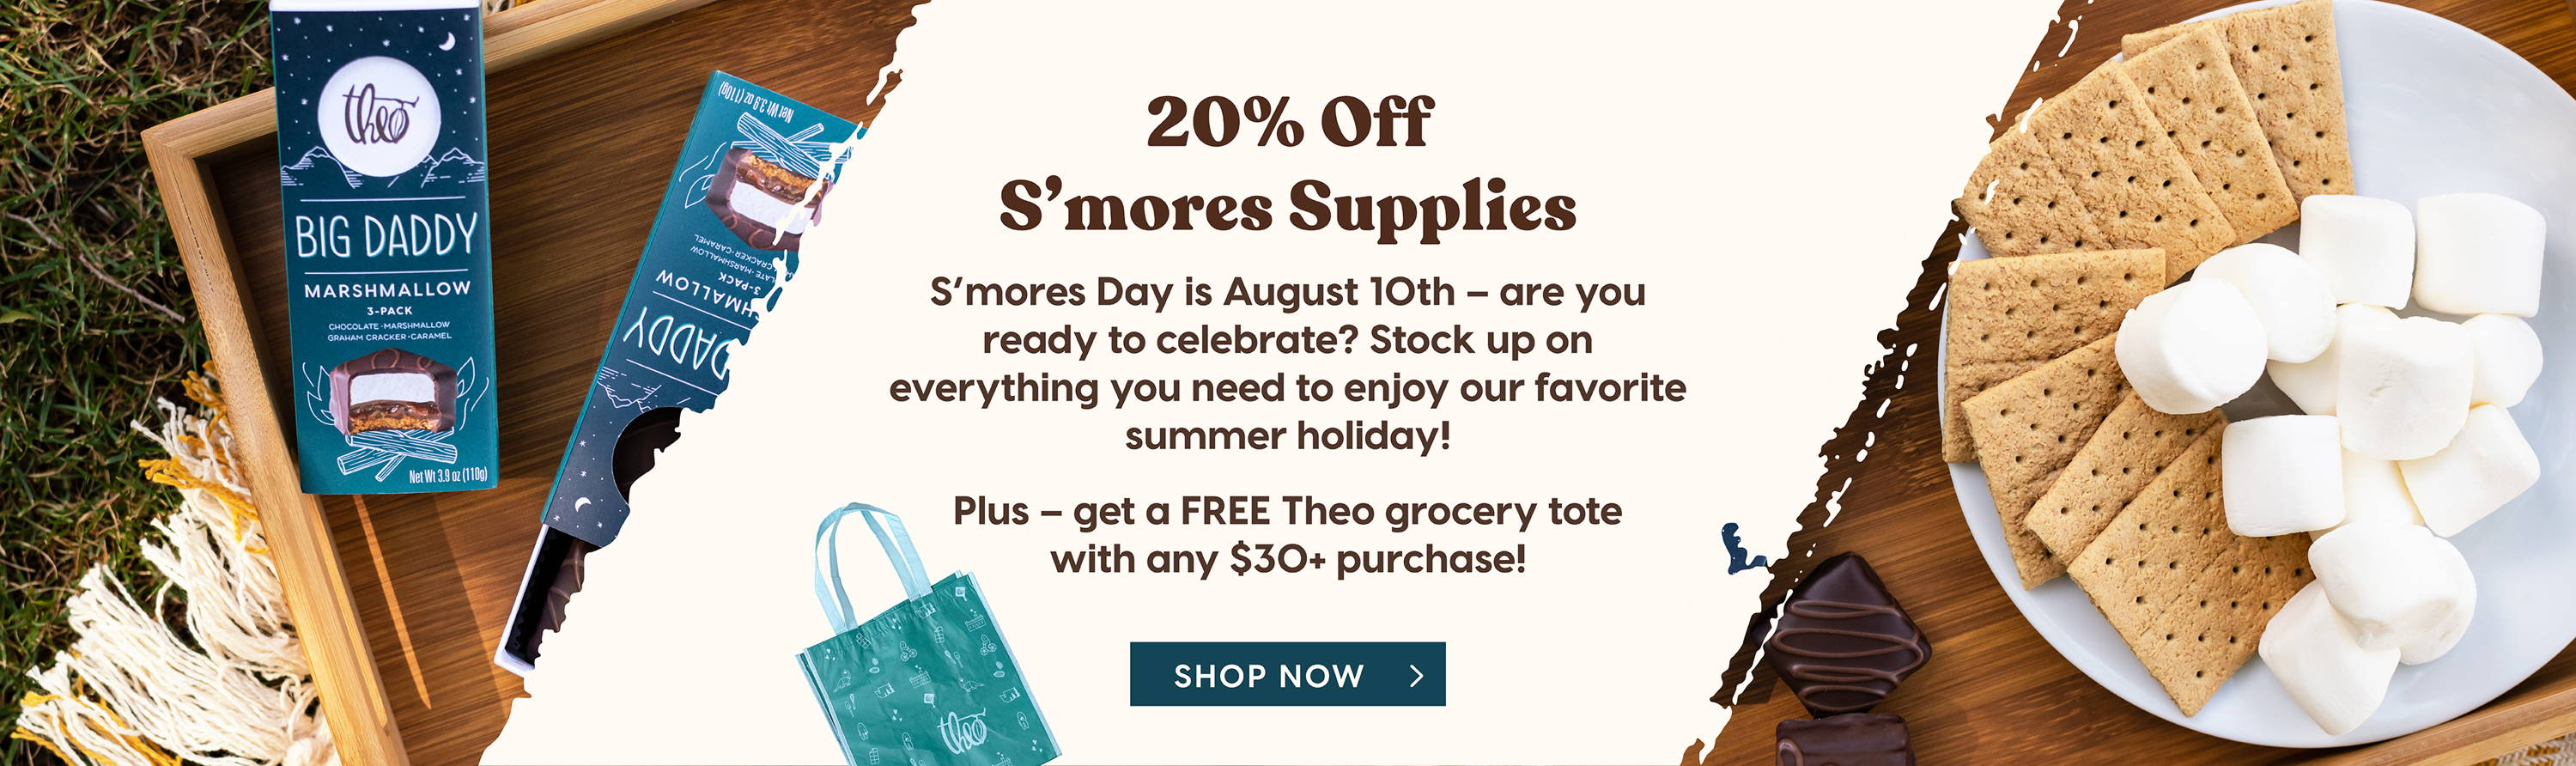 20% Off S'mores Supplies: S'mores Day is August 10th - are you ready to celebrate? Stock up on everything you need to enjoy our favorite summer holiday! Plus - get a FREE Theo Grocery Tote with any $30+ purchase!